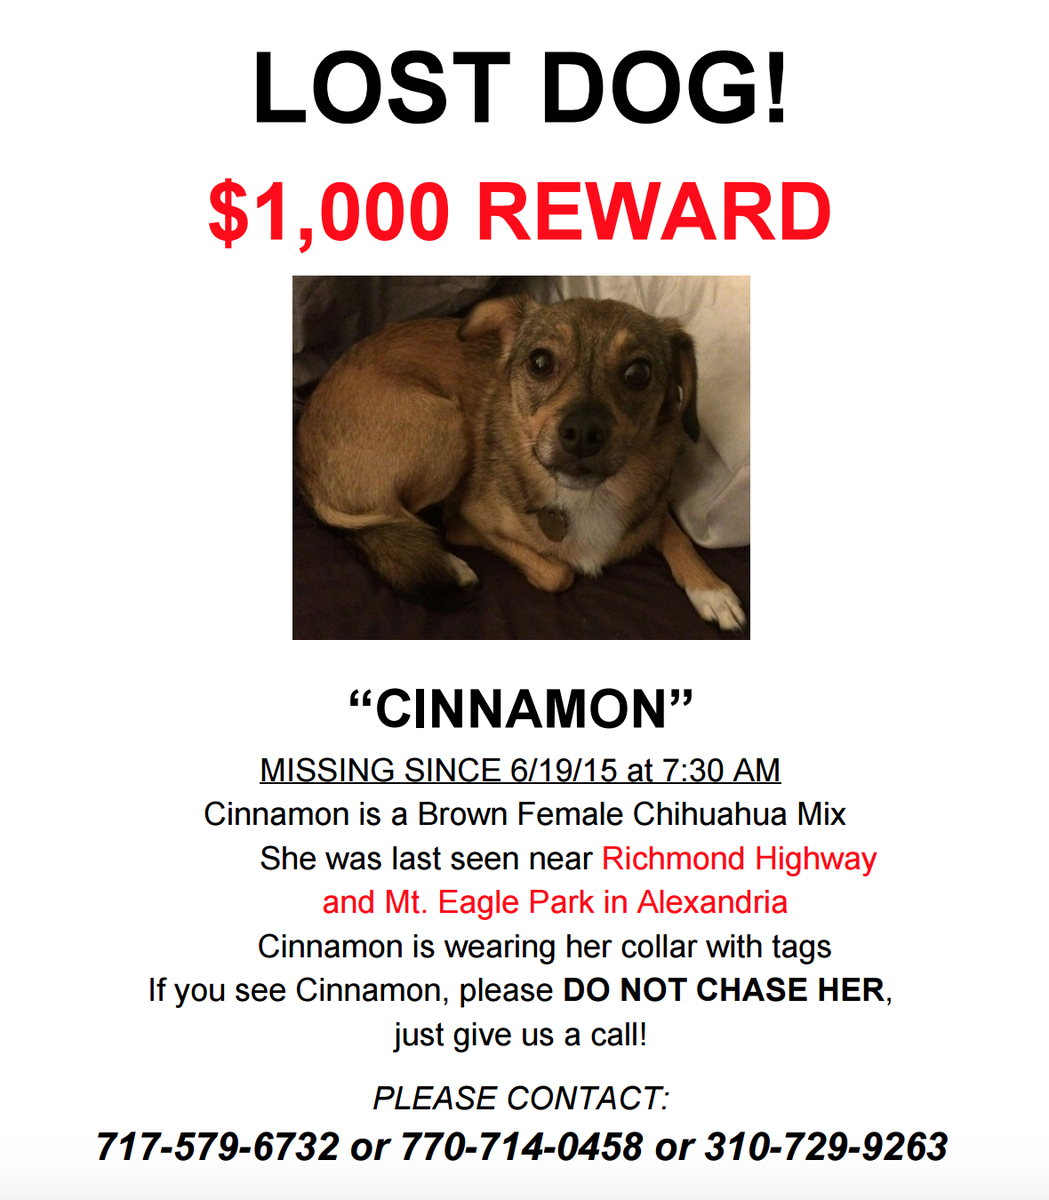 FYI - There is now a $1000 reward to #findcinn | If you see her in the Huntington/Alexandria area, please call. http://t.co/80omsgNCE7